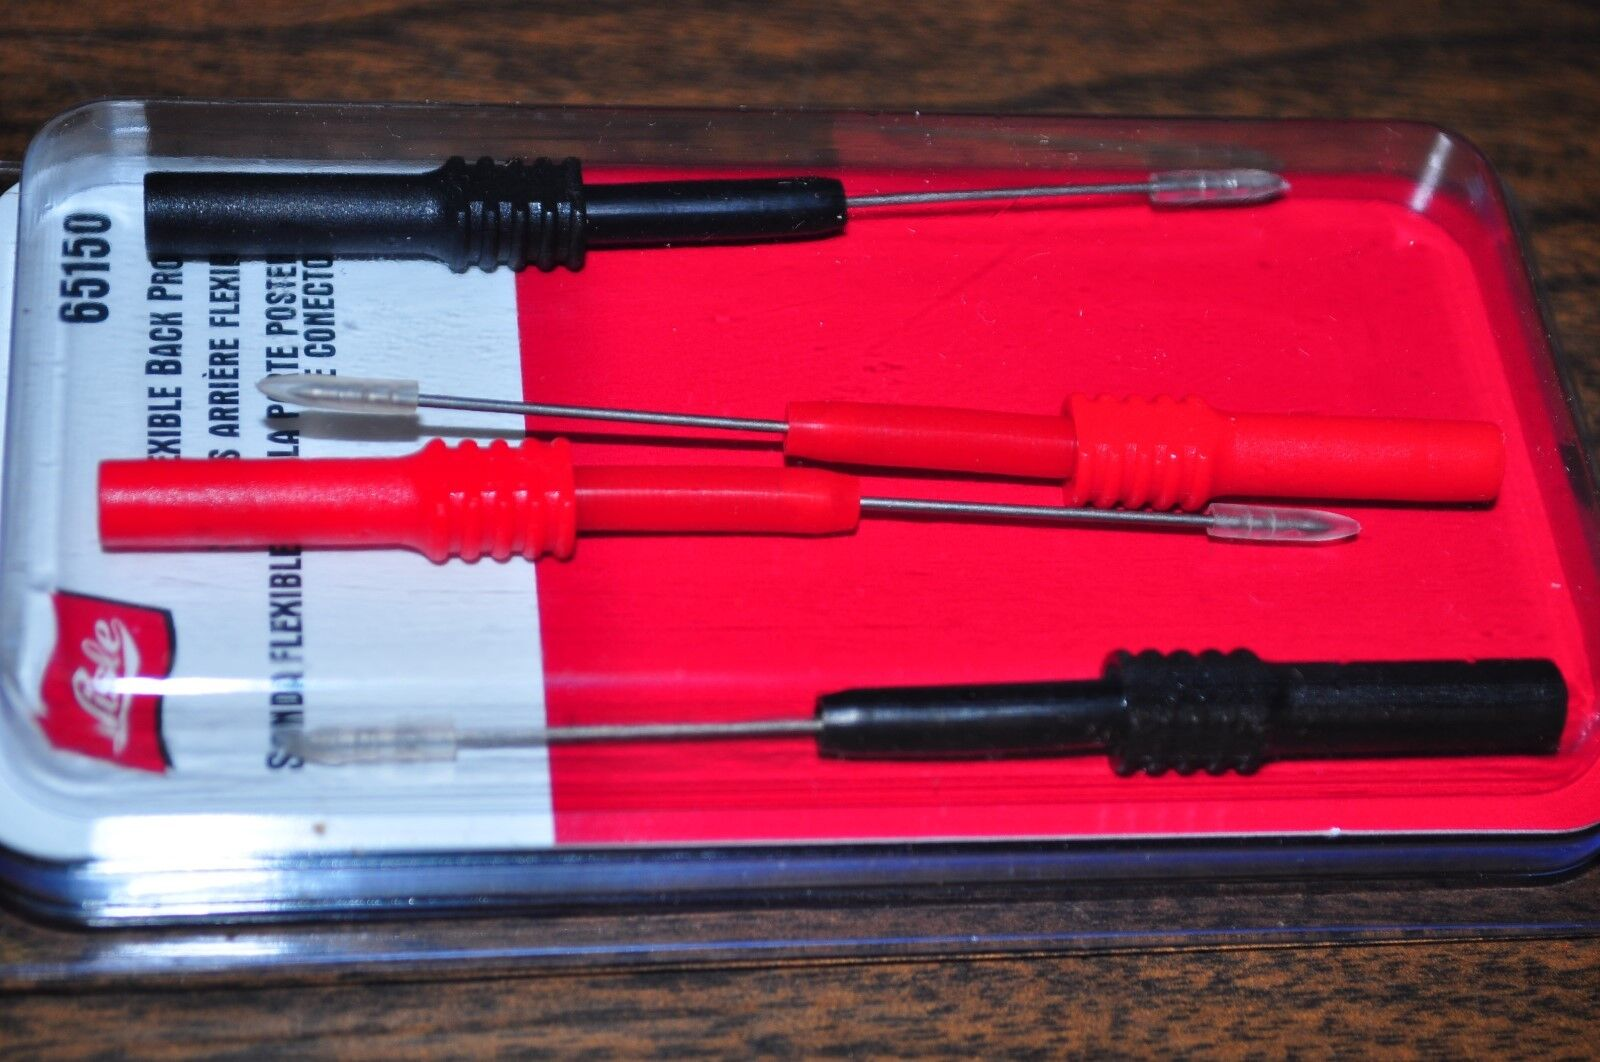 """Lisle 65150 Flexible Back Probes, 4pc ,3-3/4"""" long  used up to 30 Volts"""